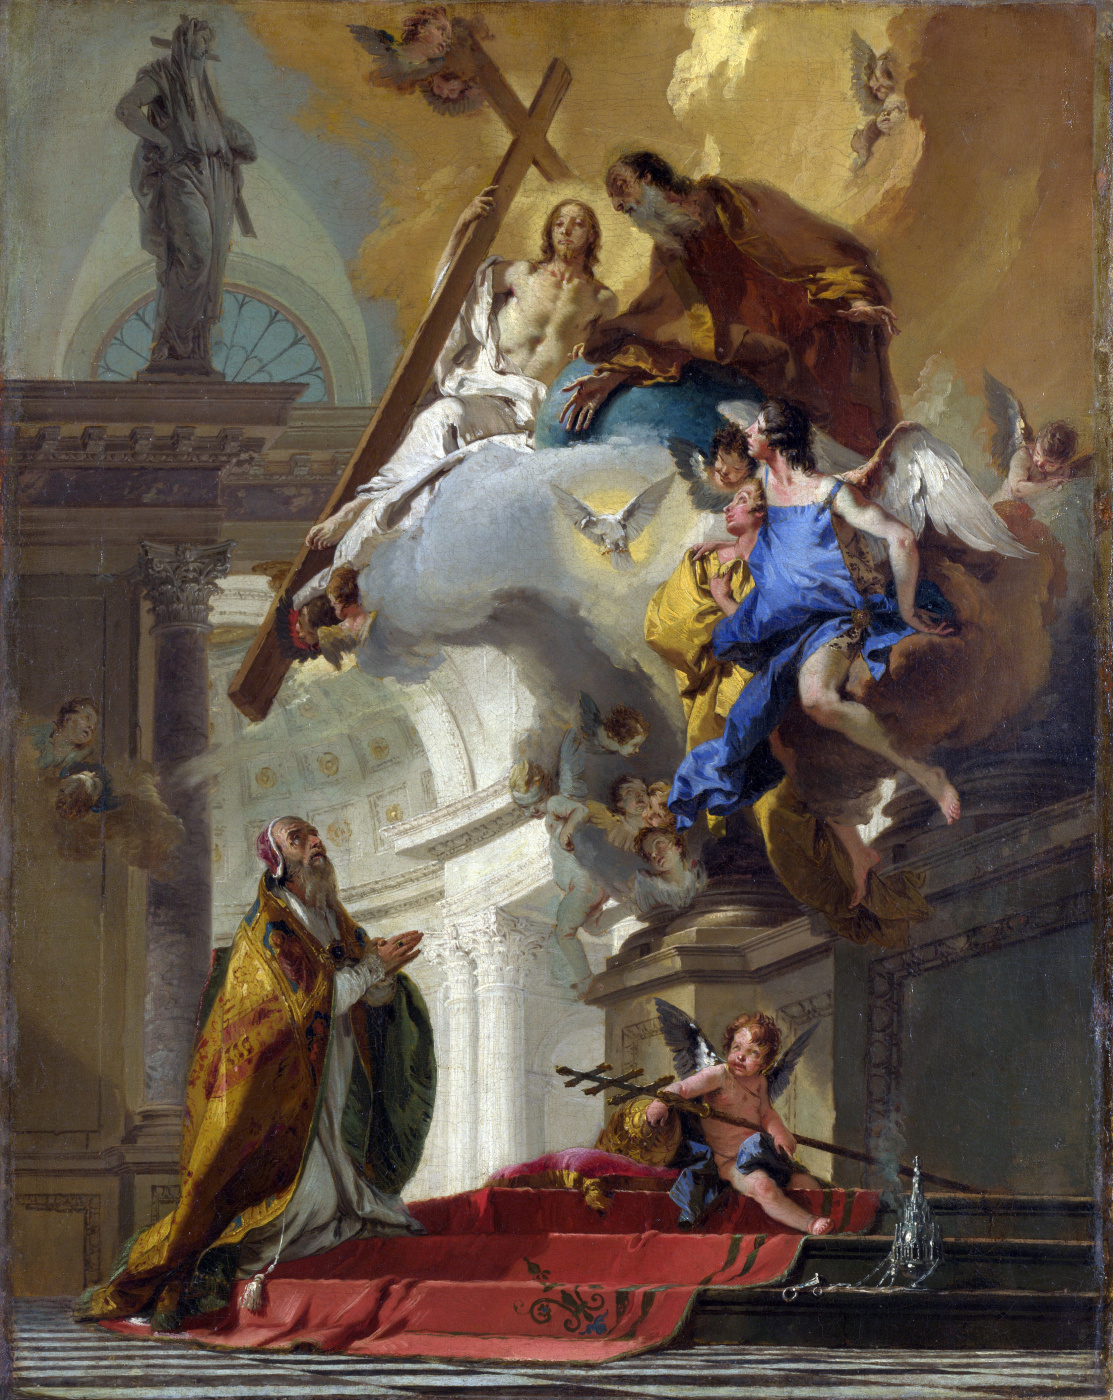 Giovanni Battista Tiepolo. Pope Clement I Praying to the Trinity